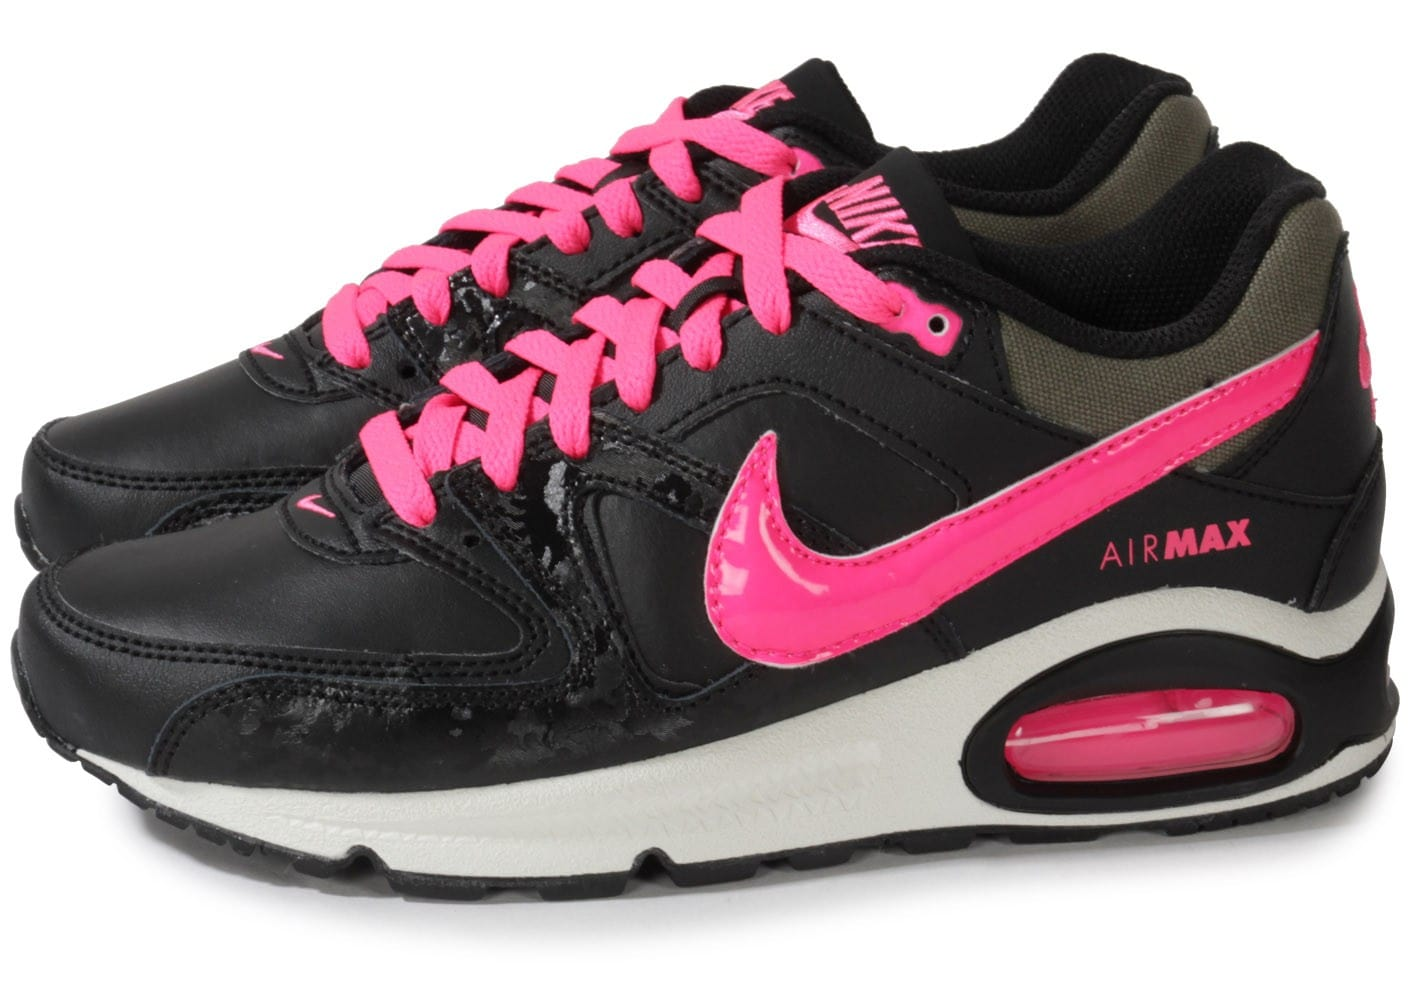 nike air max command junior noire et rose chaussures chaussures chausport. Black Bedroom Furniture Sets. Home Design Ideas